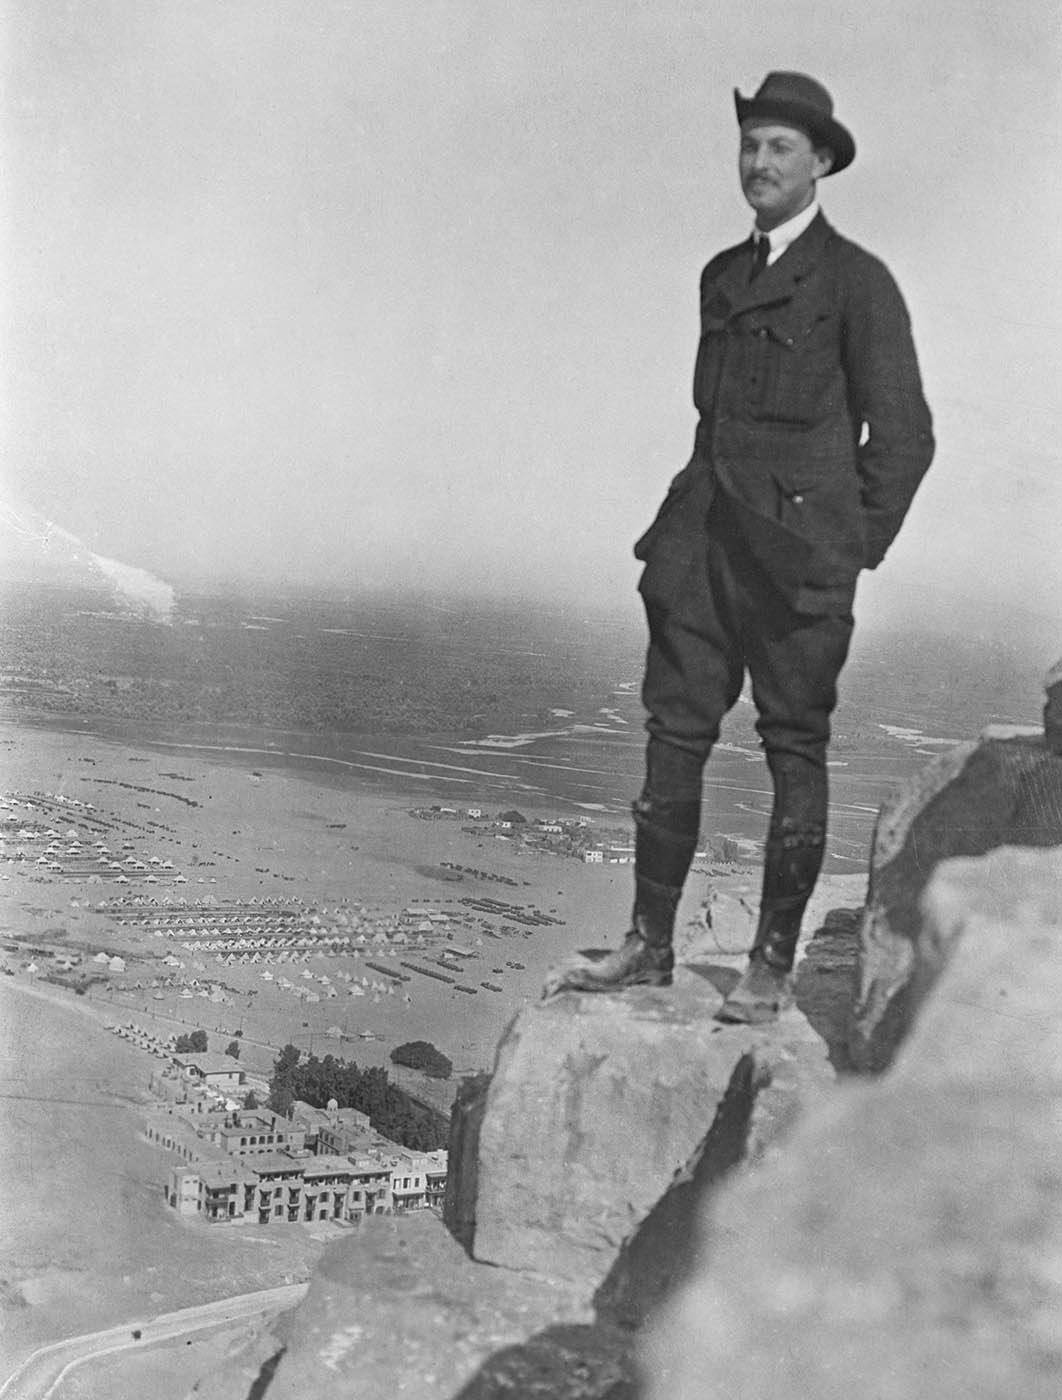 Portrait of a man standing on a rock overlooking buildings below. - click to view larger image